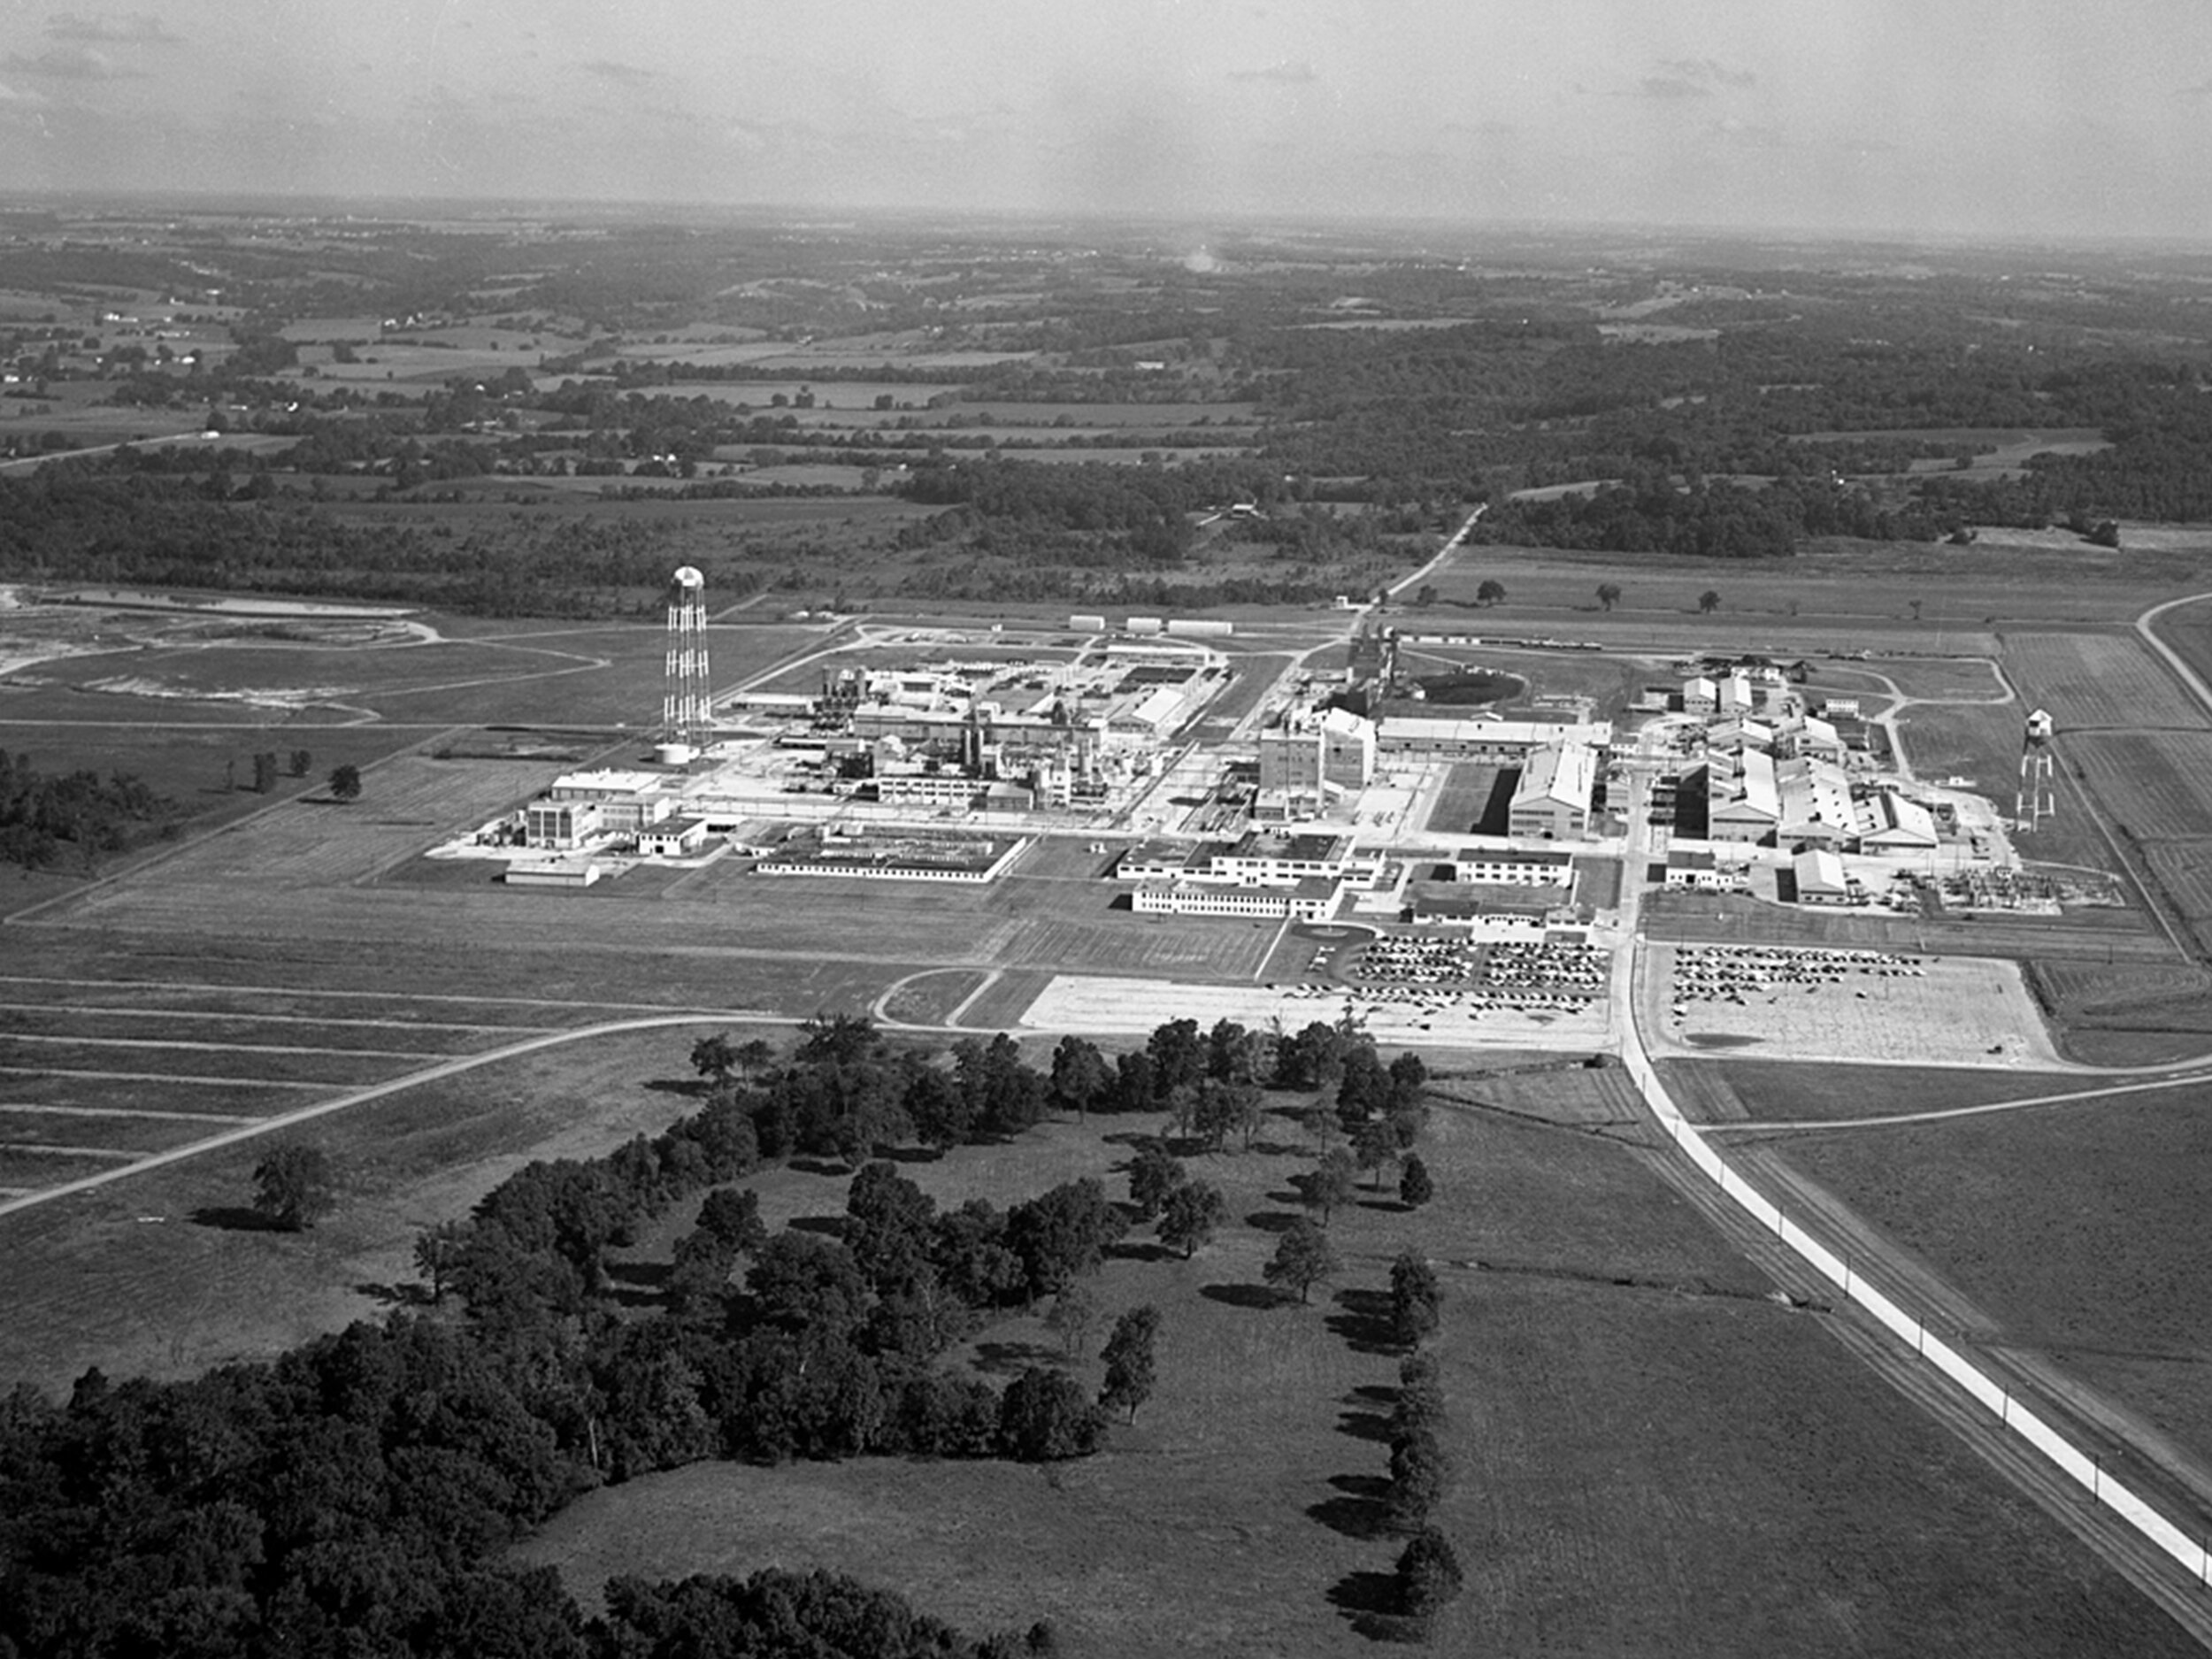 Figure 2: BEFORE - Aerial of the Fernald Feed Materials Production Center during the Cold War era